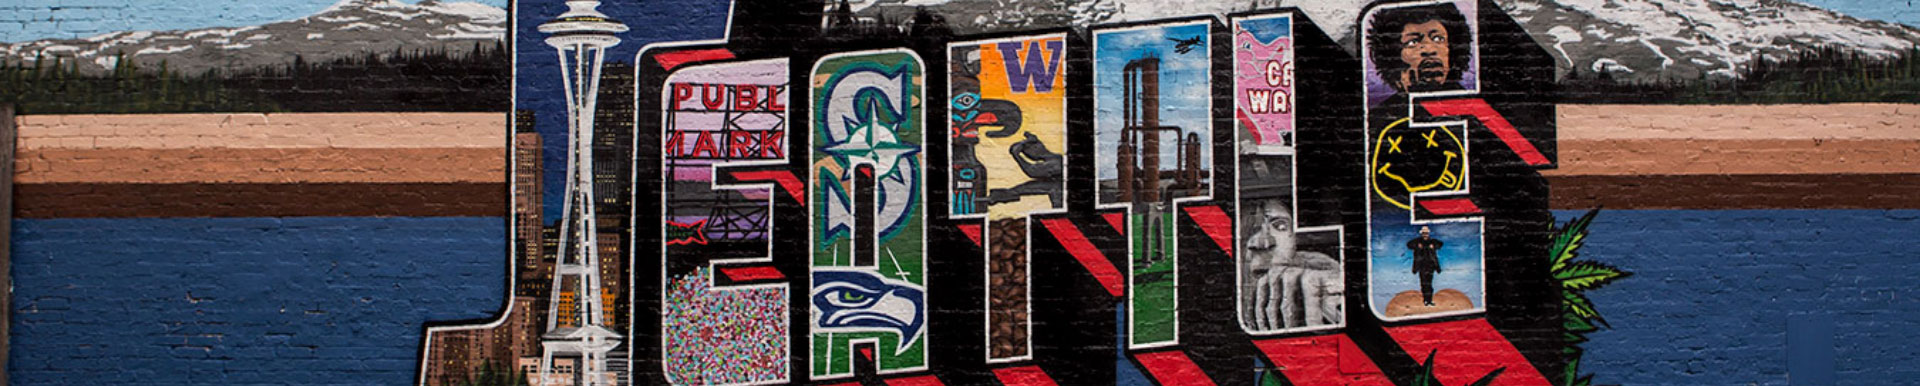 A mural of the word Seattle